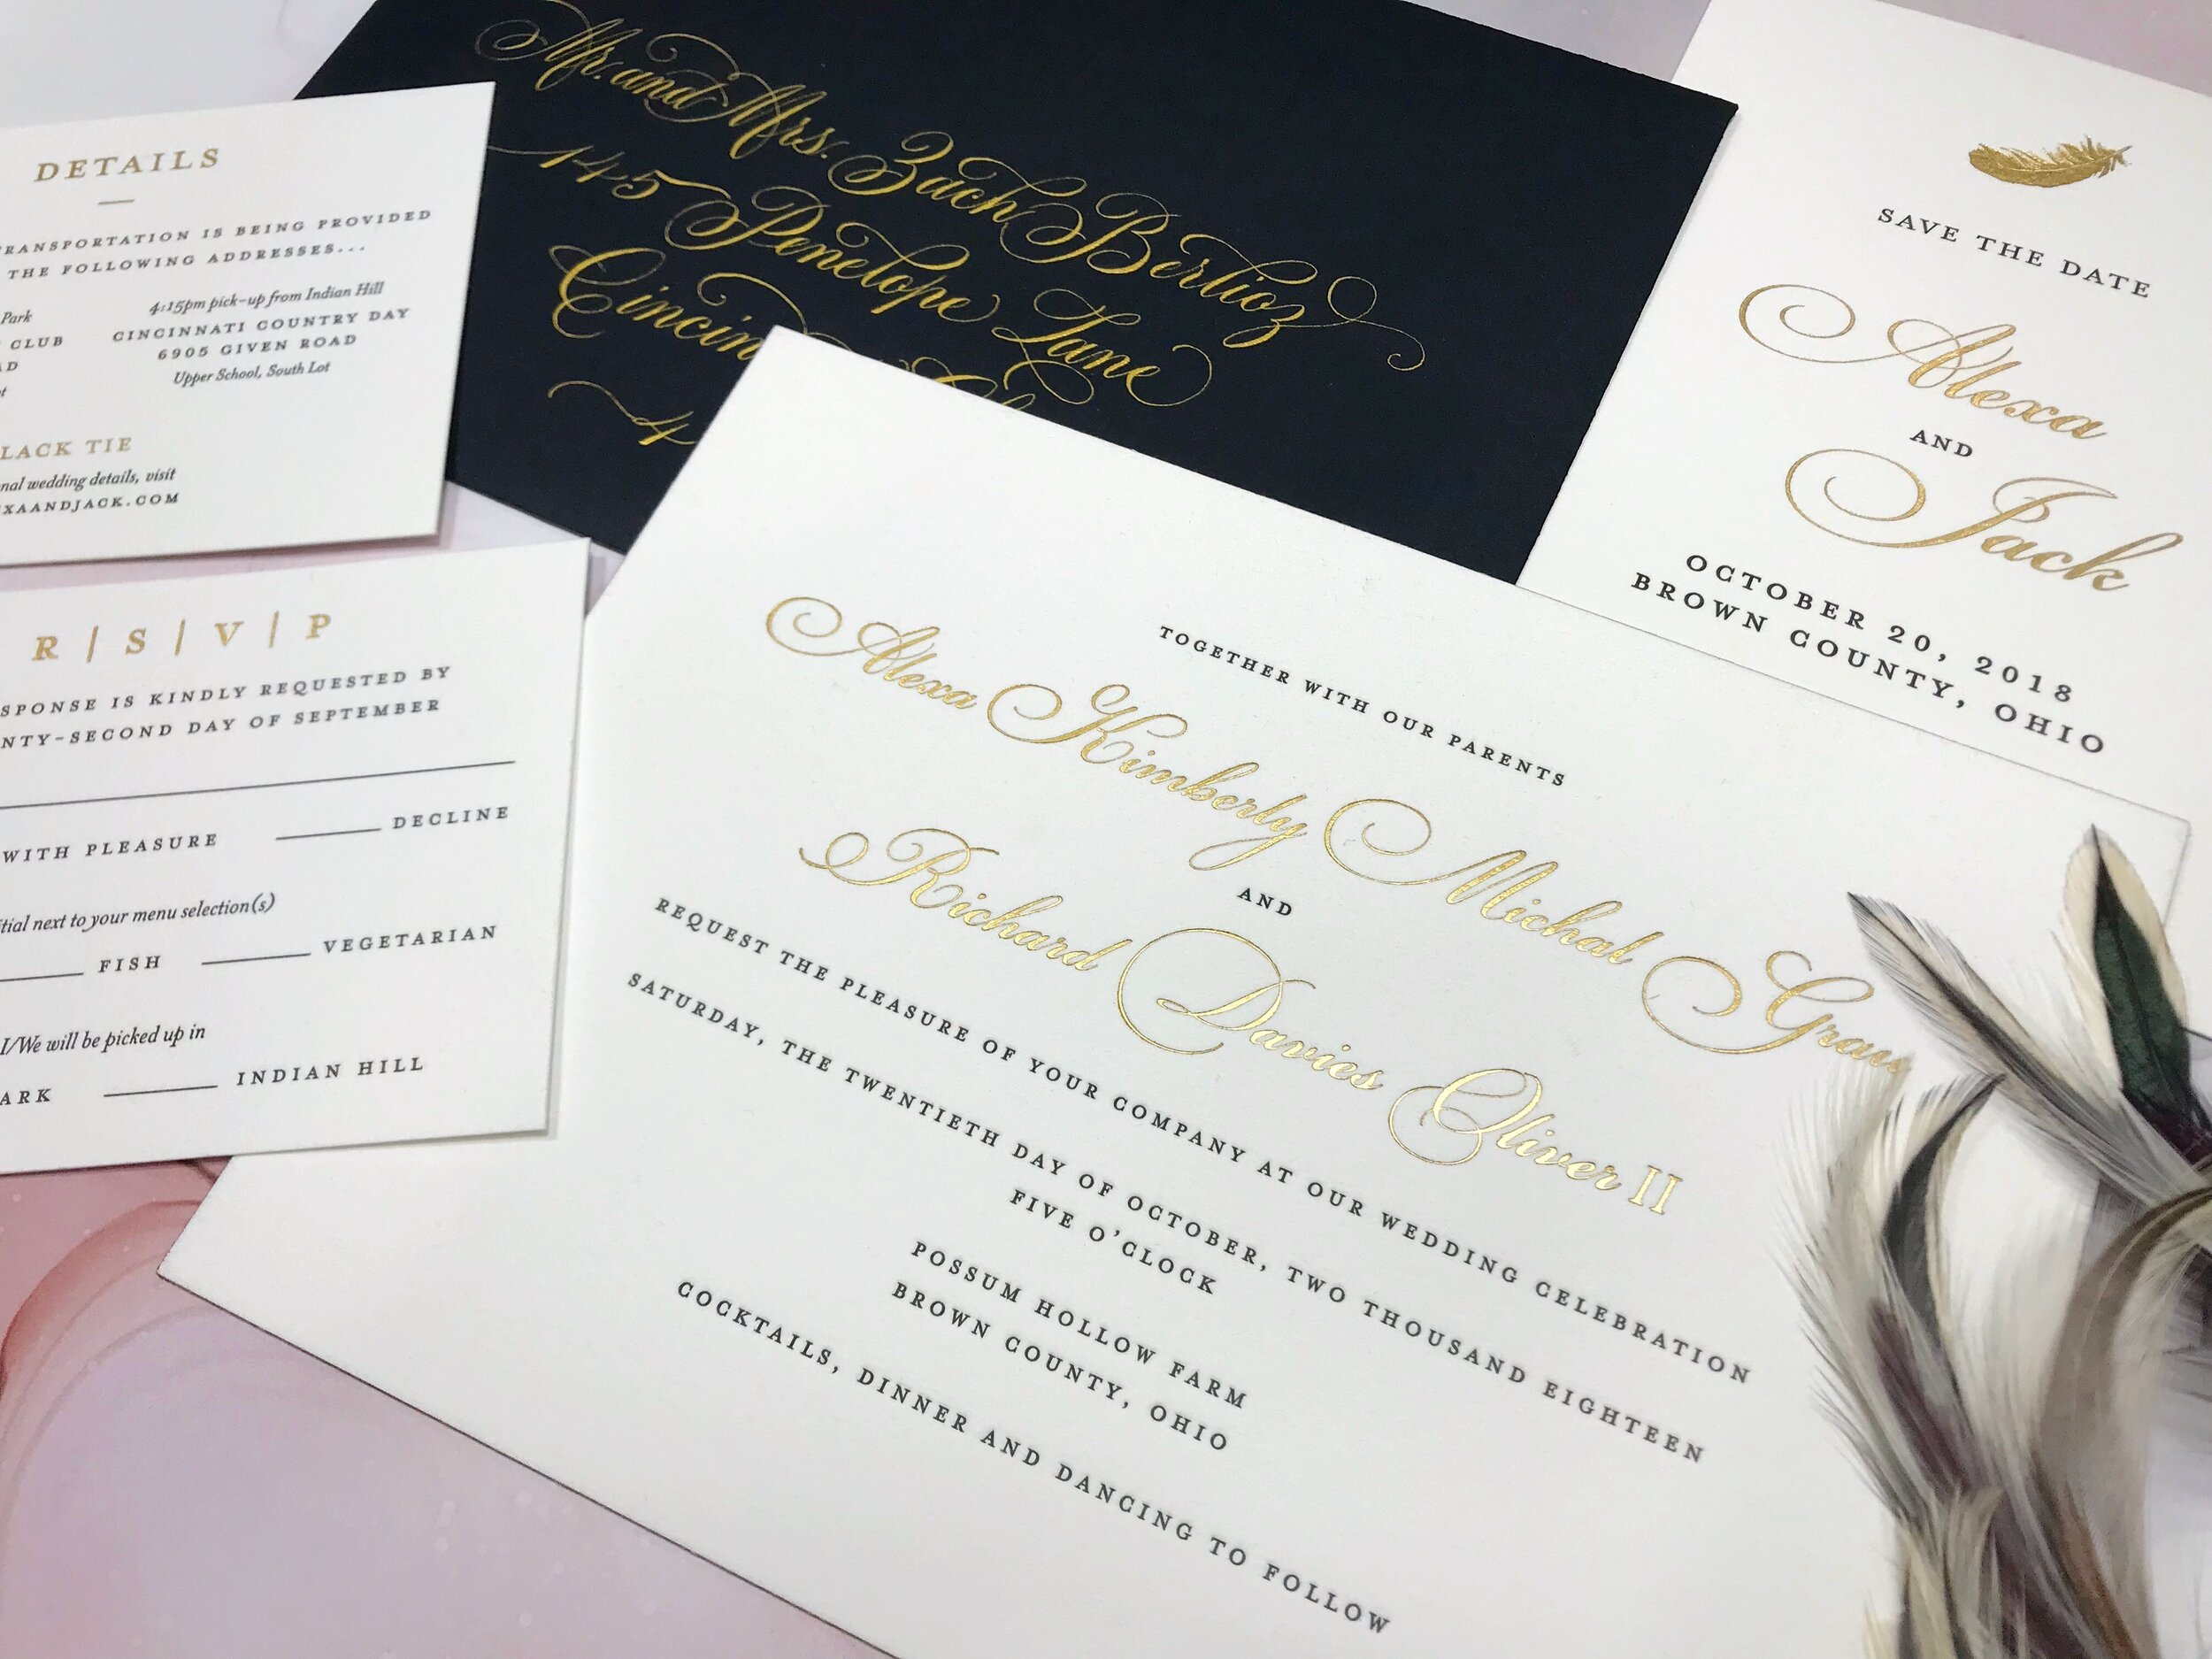 Stationery suite with gold details by Poeme